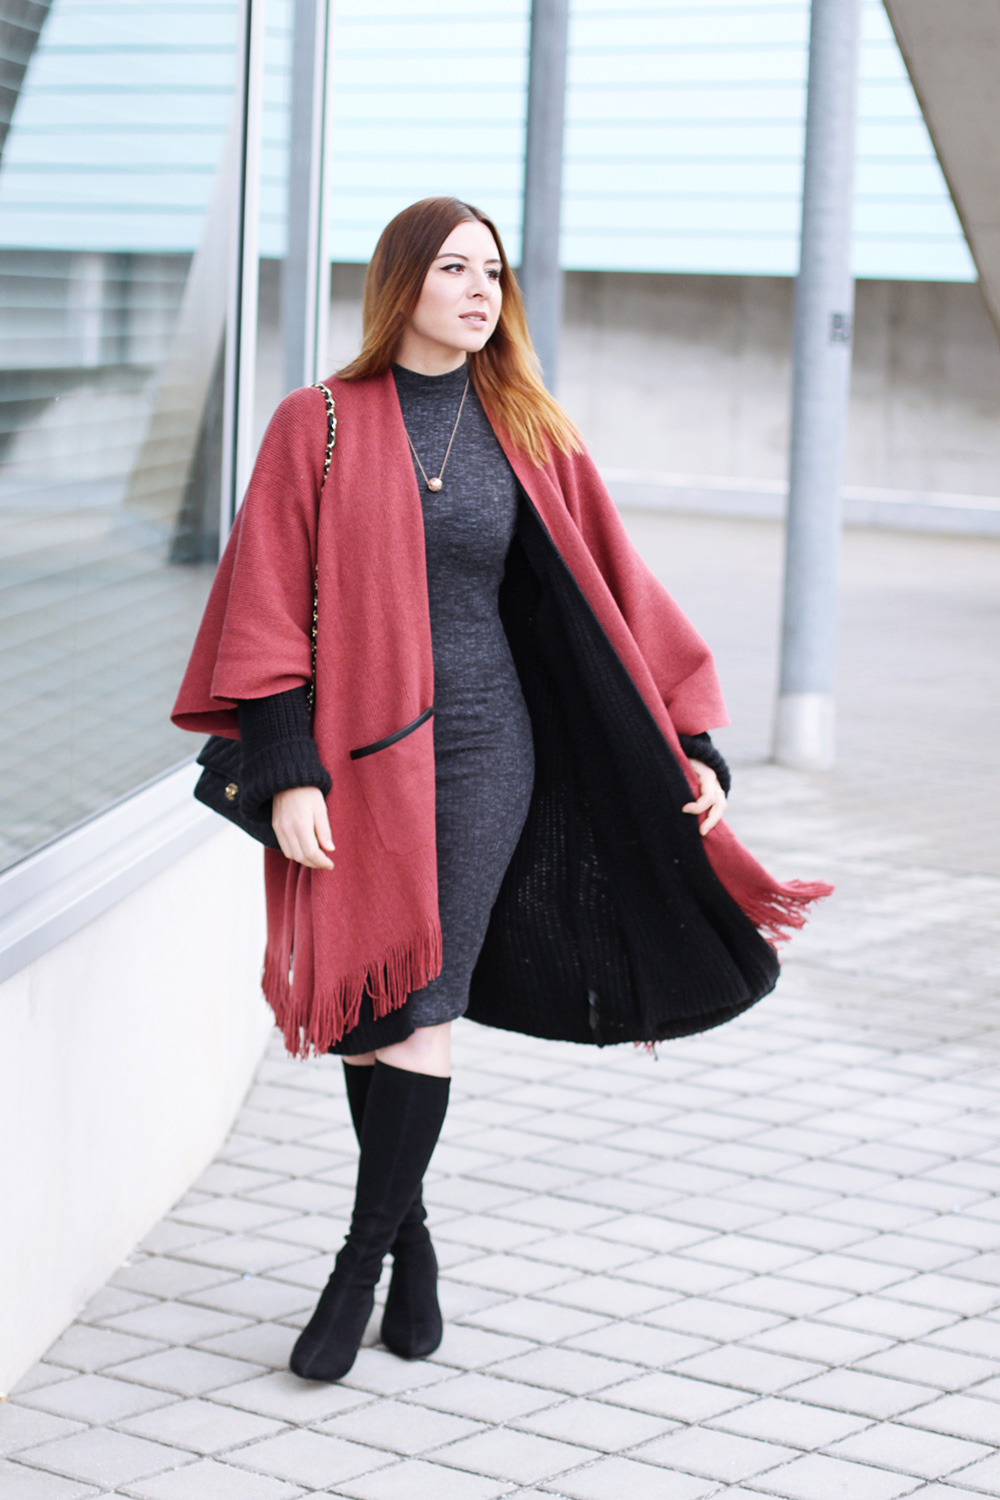 who is mocca, modeblog, fashionblog, cape outfit, cape kombinieren, stretchstiefel outfit, layering look, lagenlook, chanel classic schwarz 2.55, midikleid outfit, whoismocca.com